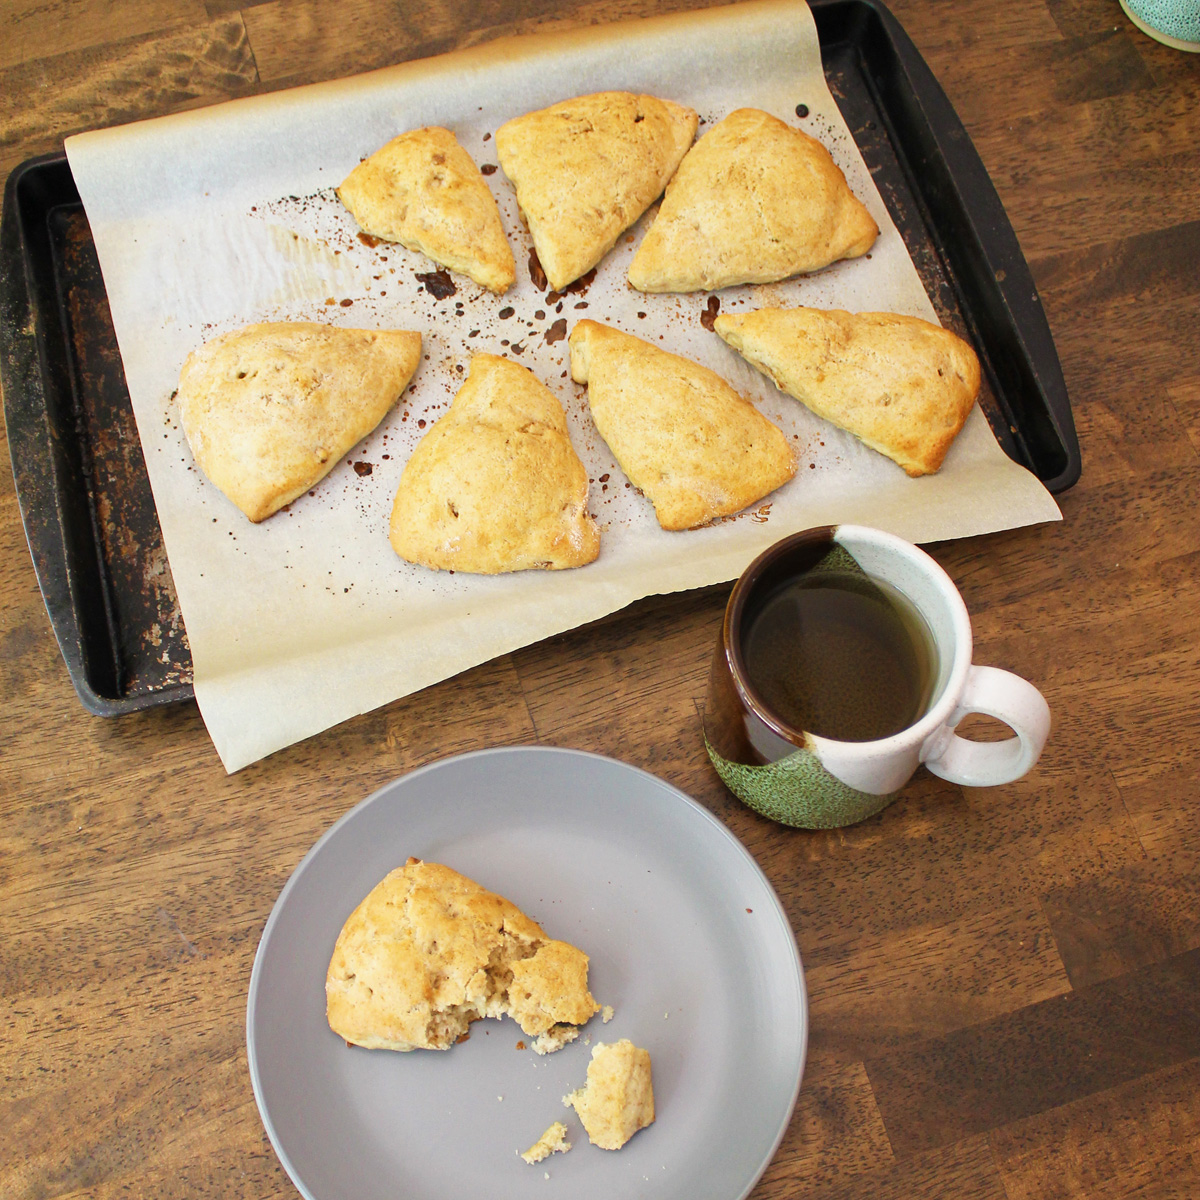 Overhead view of a tray of seven maple walnut scones on a baking tray next to an earthenware mug of tea and an eighth scone on a gray plate. The scone has a bite out of it.